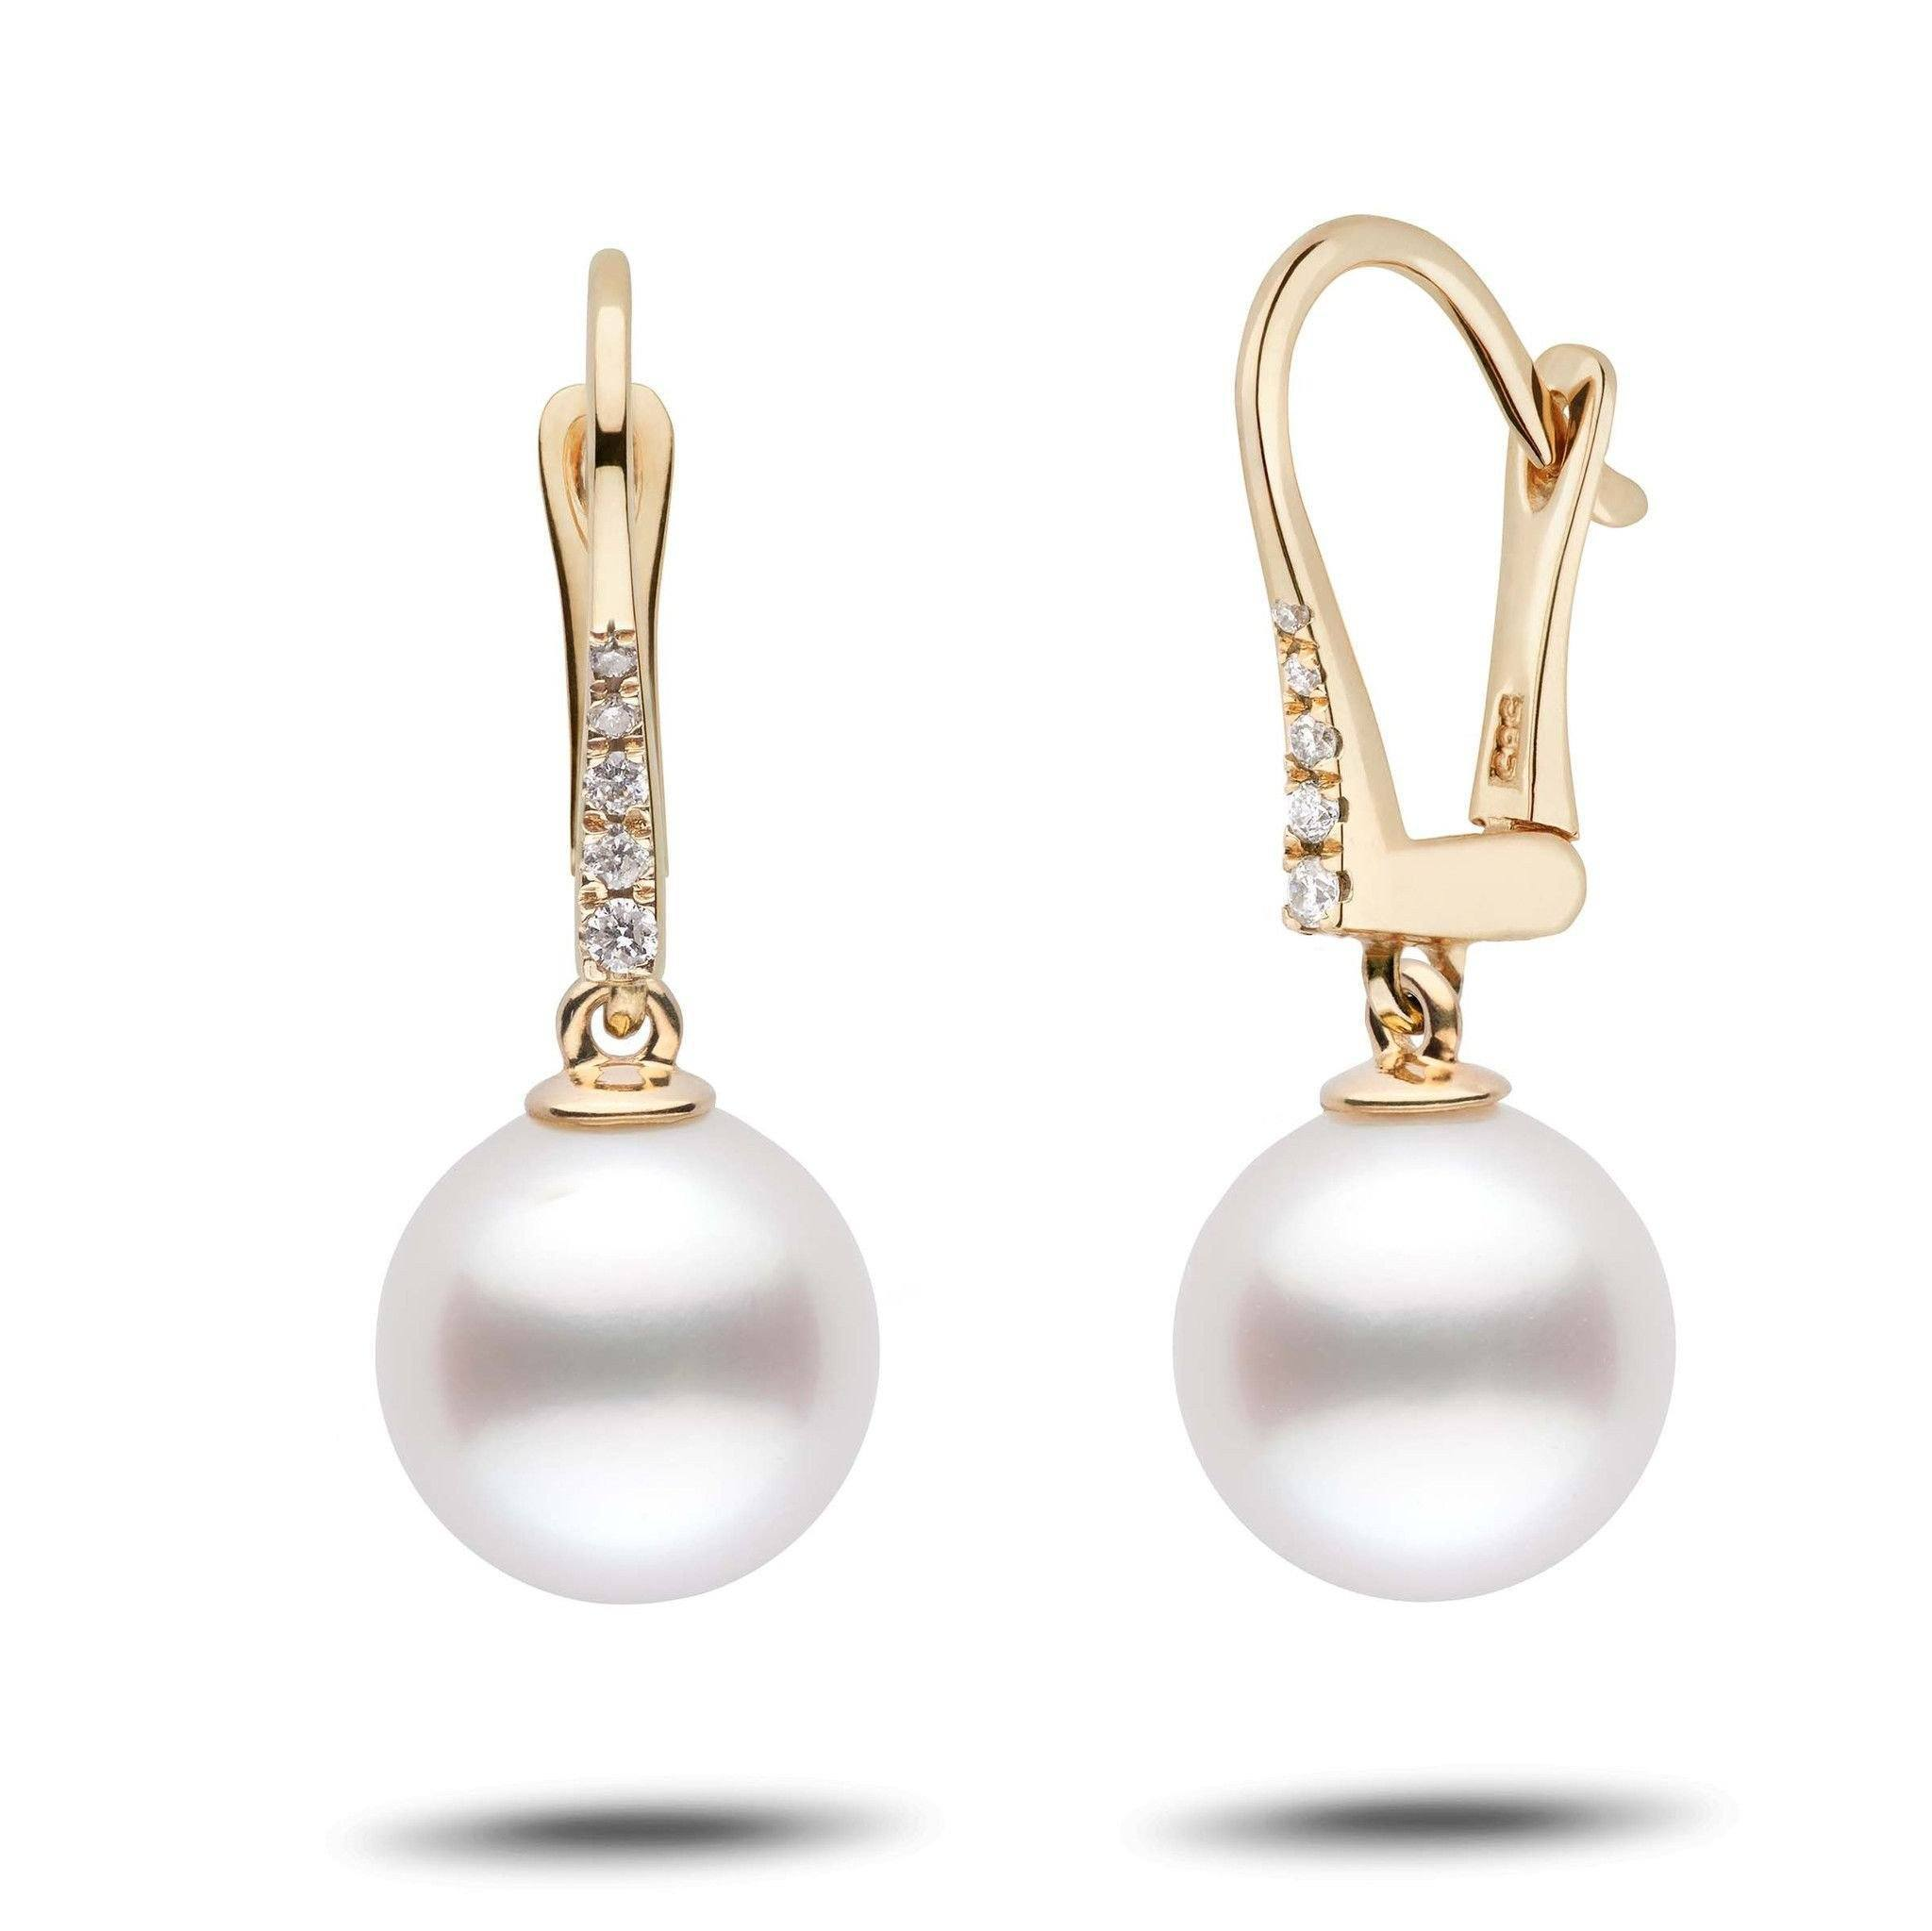 Allure Collection White South Sea 10.0-11.0 mm Pearl & Diamond Dangle Earrings